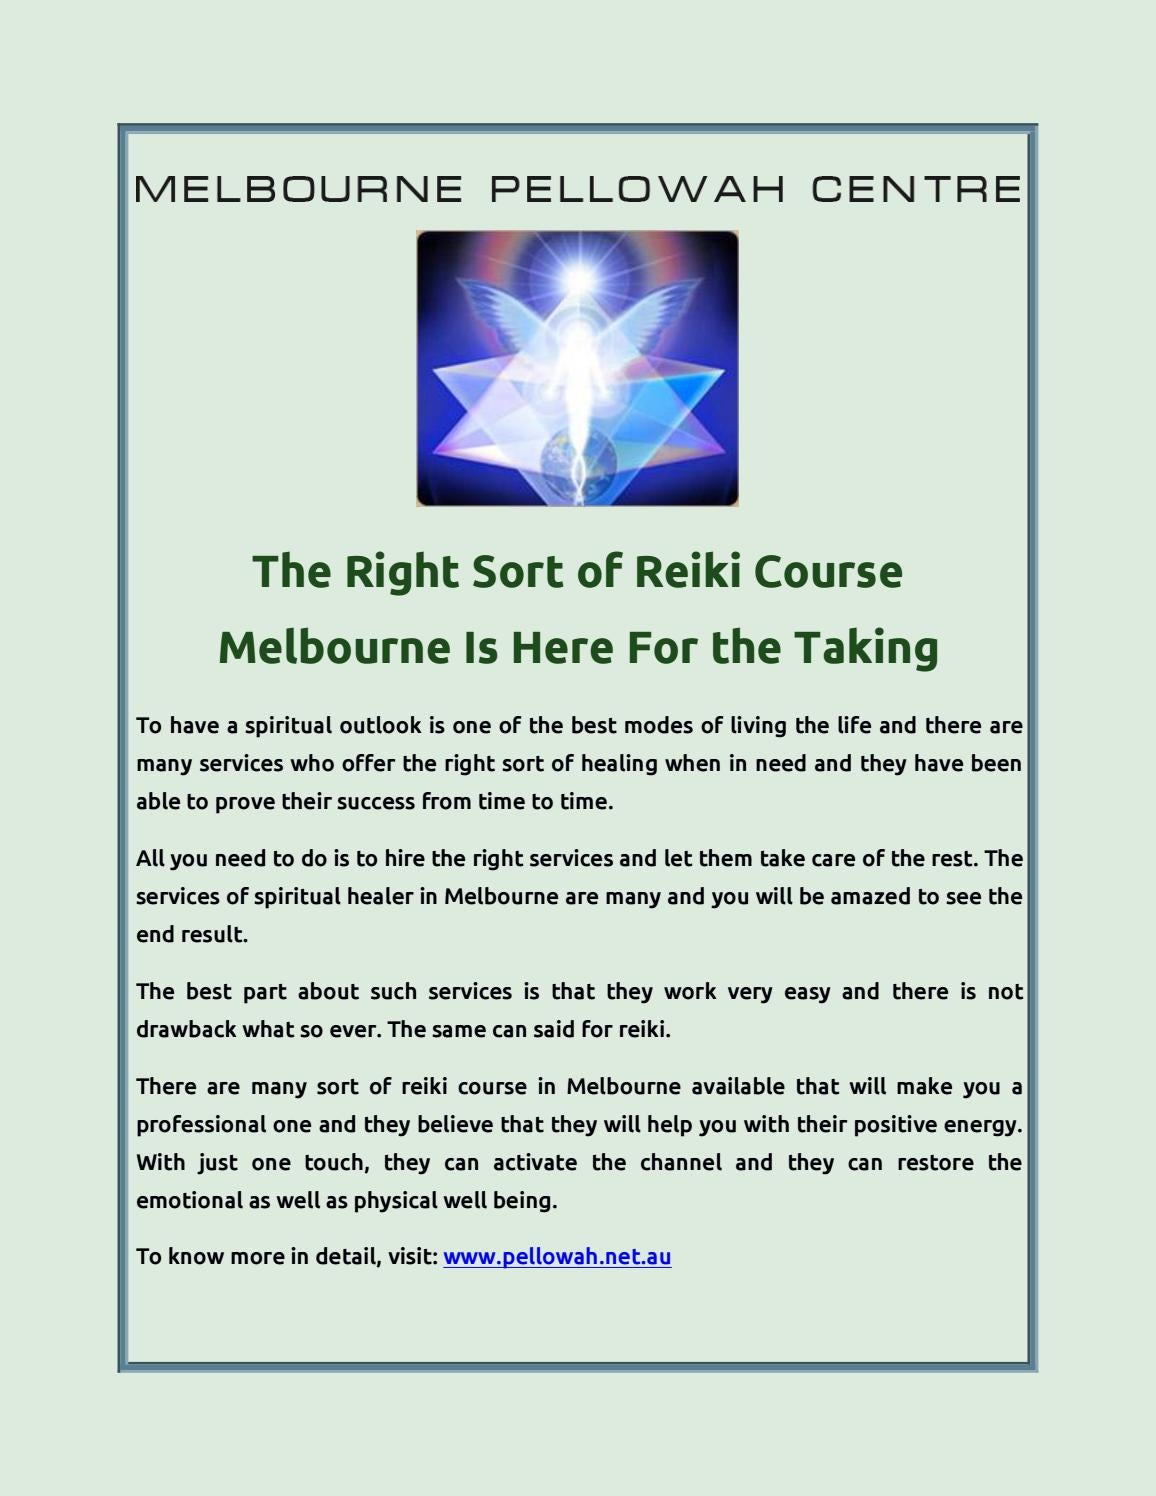 The Right Sort of Reiki Course Melbourne Is Here For the Taking by